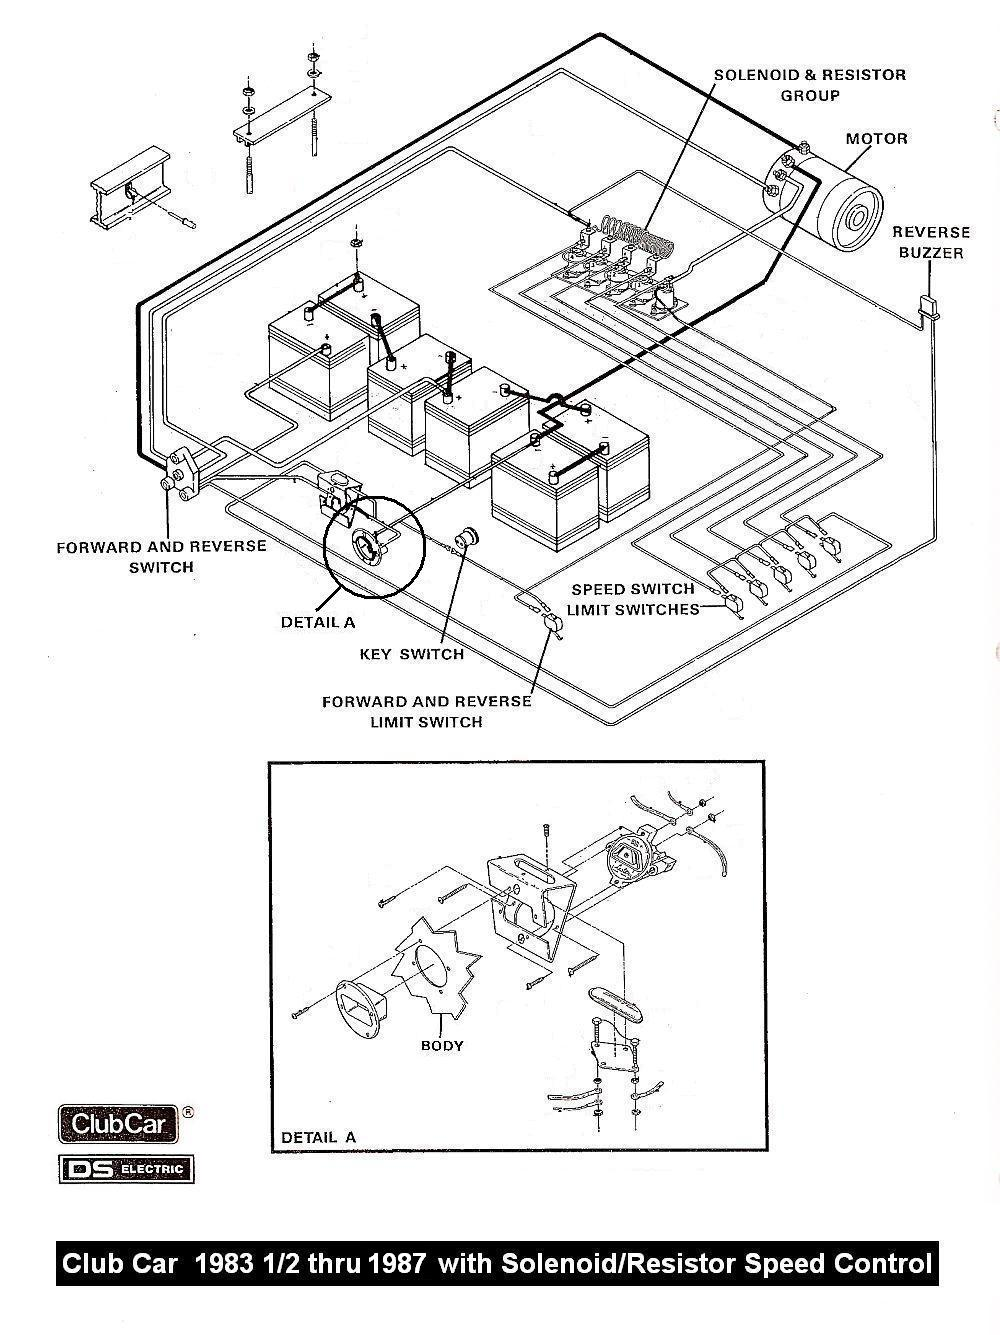 Club Car Starter Wiring Manual Guide Diagram Remote Diagrams 1984 Ignition Free Engine Image For User Download Ds Generator Solenoid